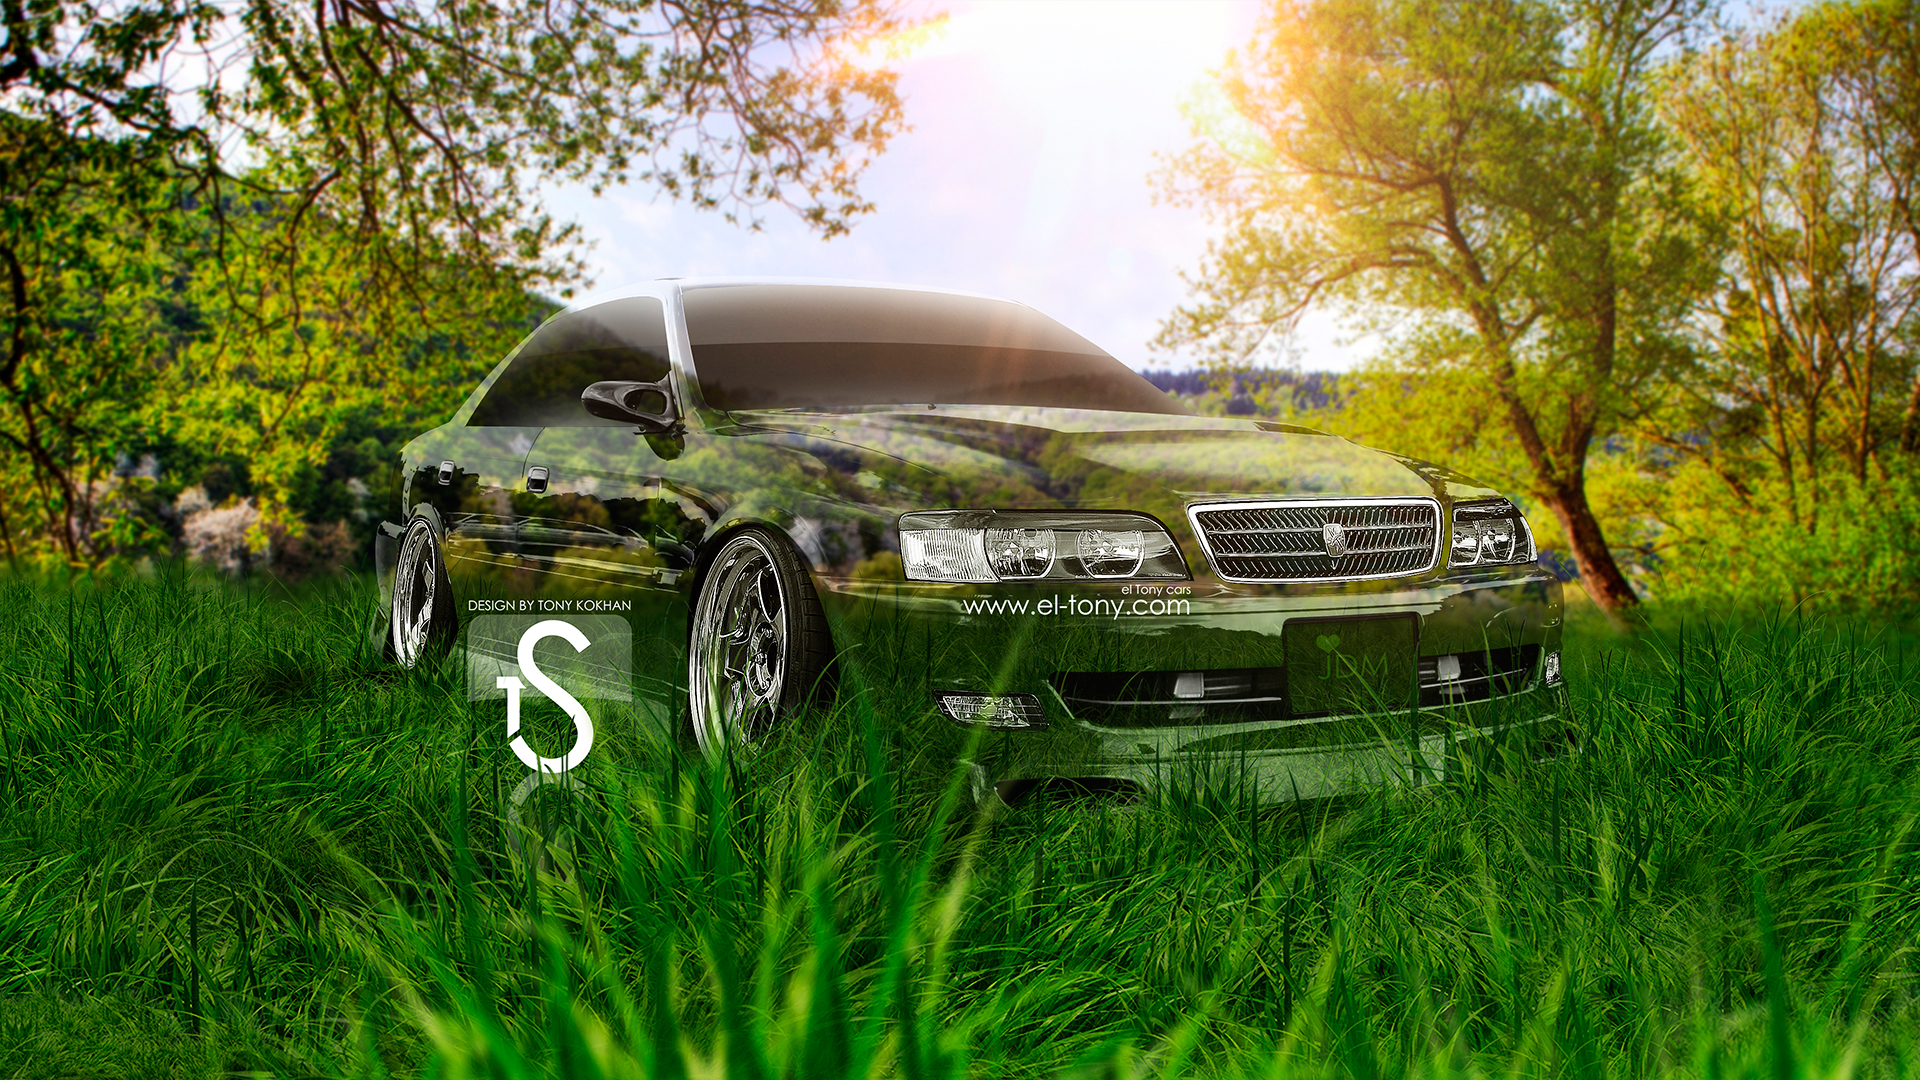 Toyota Chaser JZX100 JDM Crystal Nature Car 2013 .